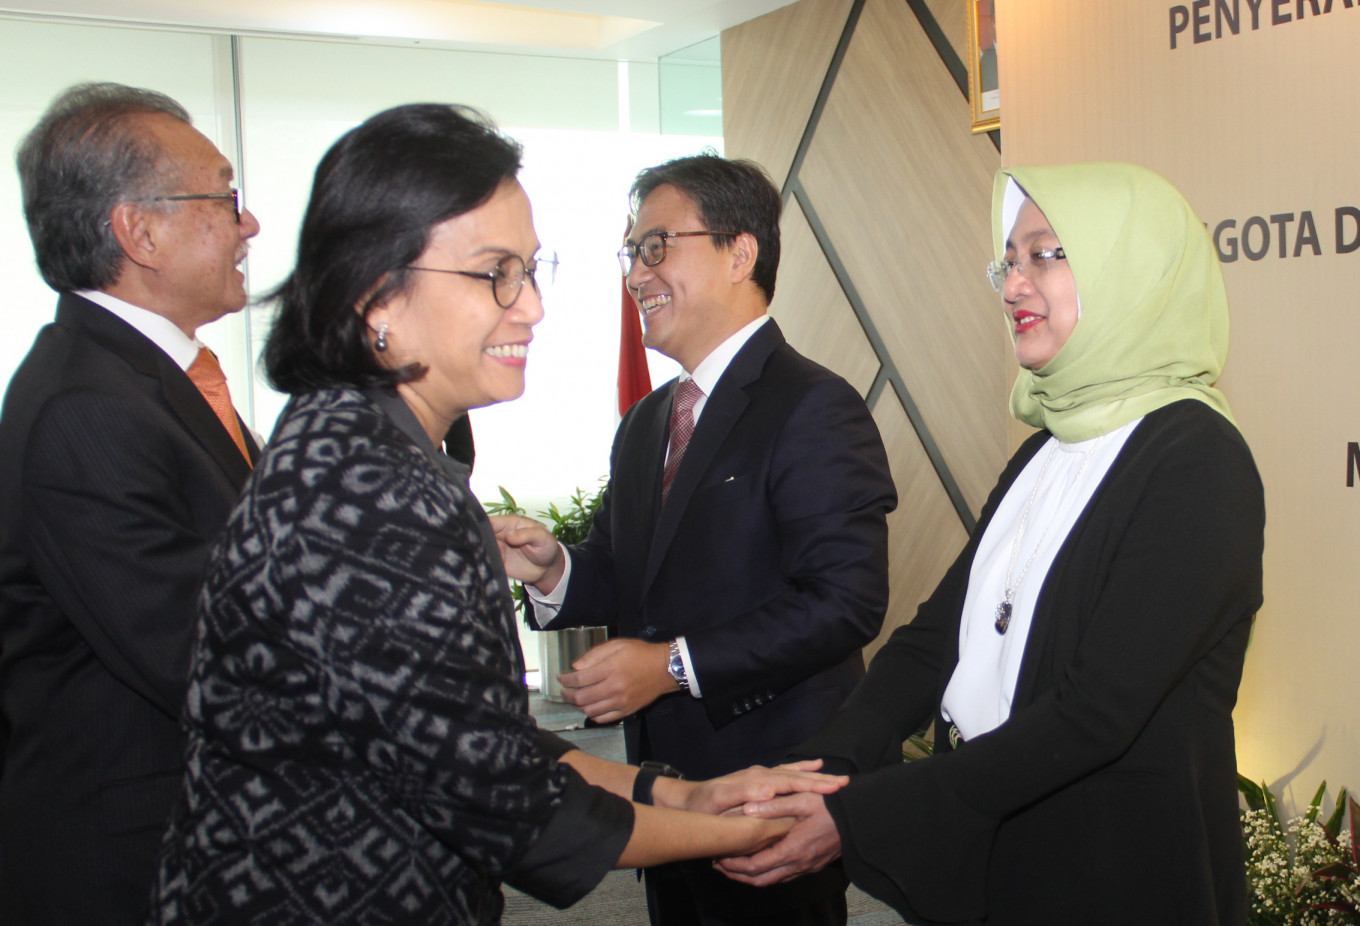 Lana Soelistianingsih appointed LPS executive director